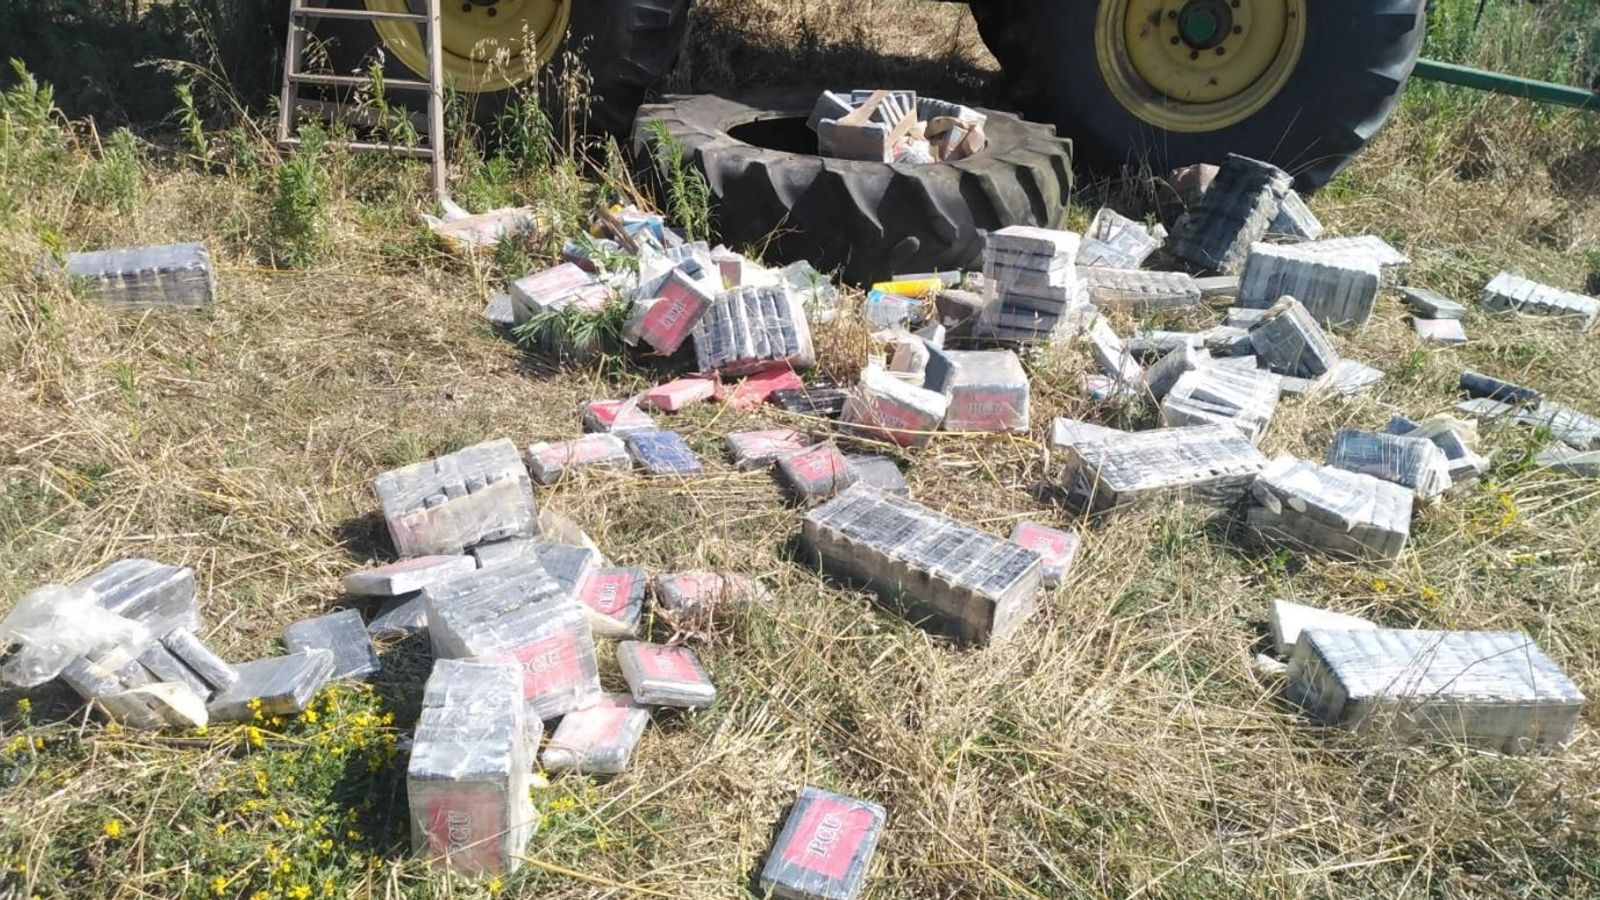 Record haul of cocaine worth $1bn found in Uruguay - EpicNews